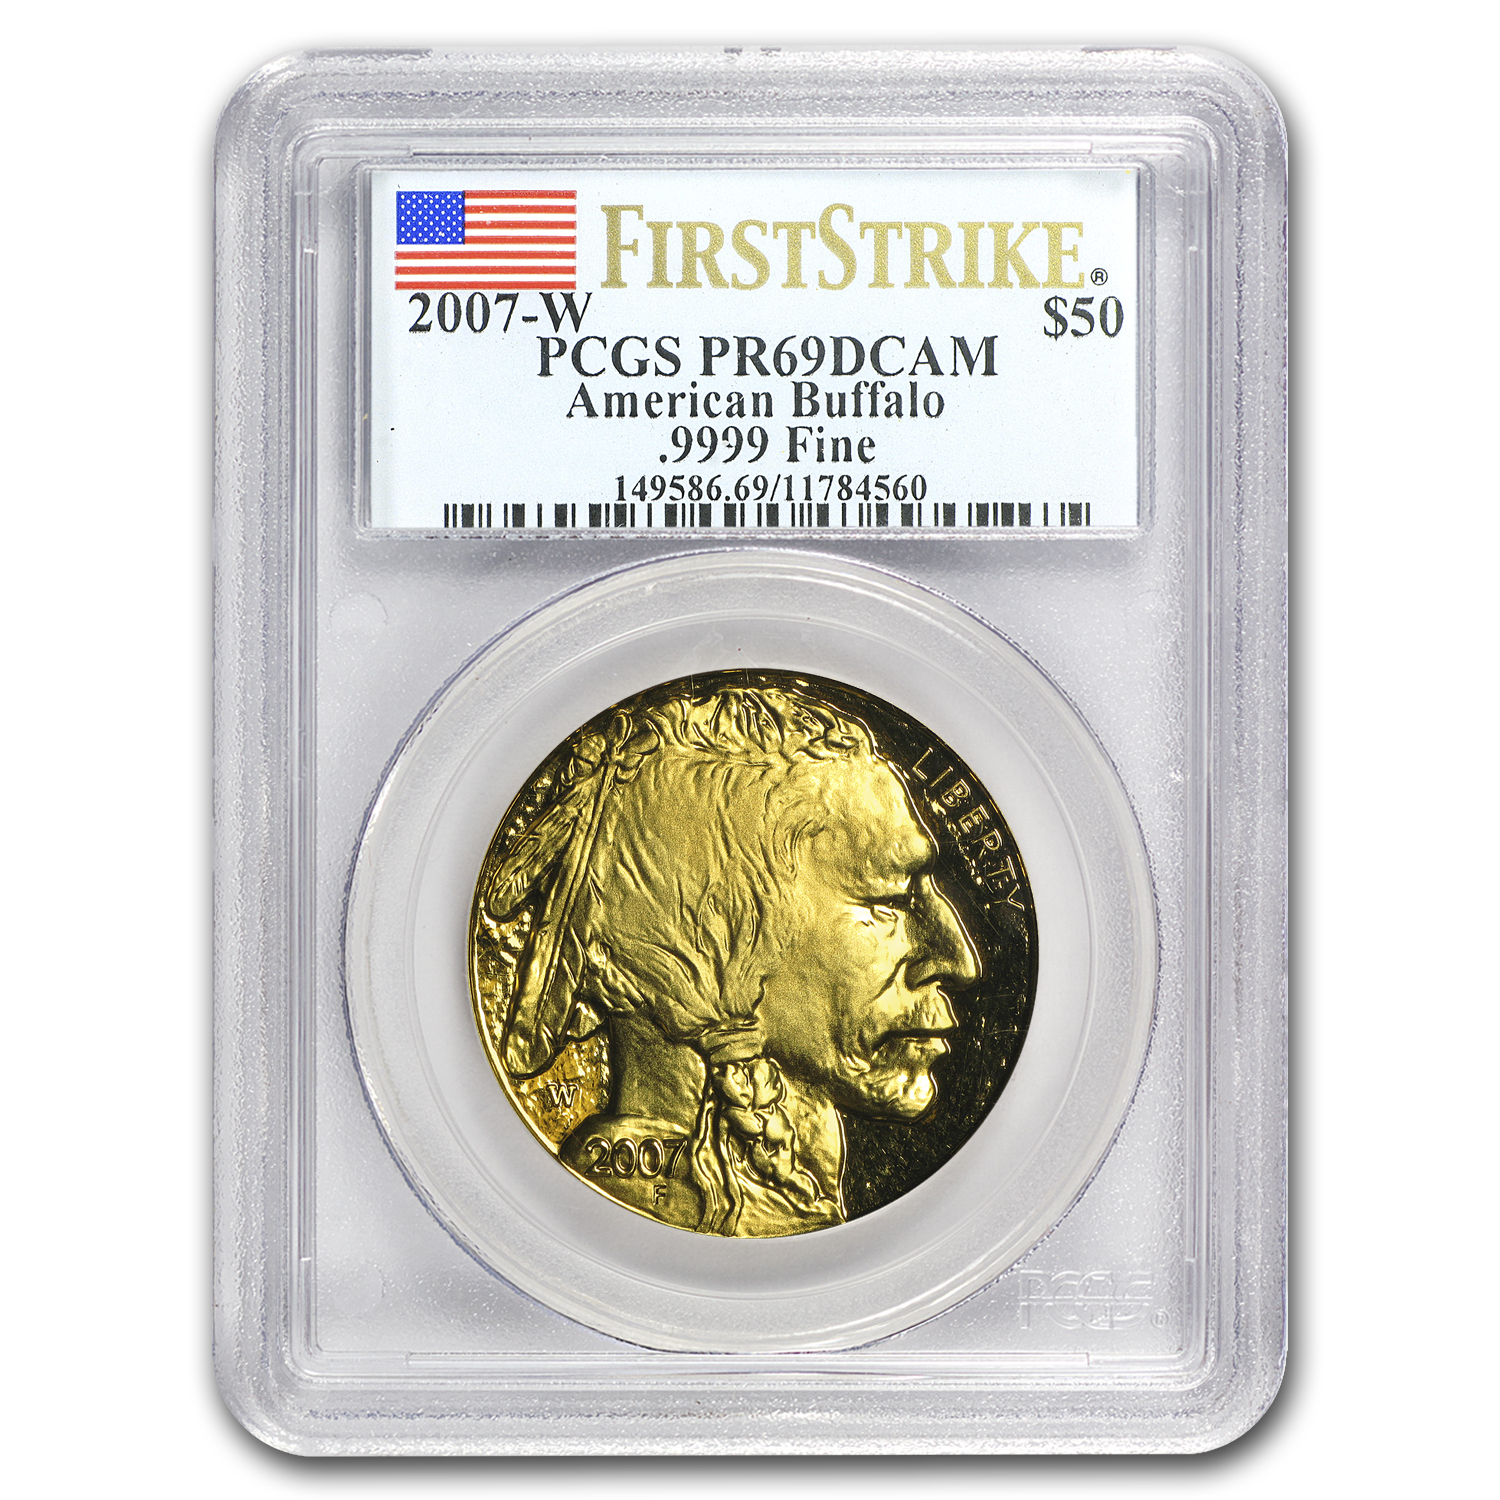 2007-W 1 oz Proof Gold Buffalo PR-69 PCGS (First Strike)